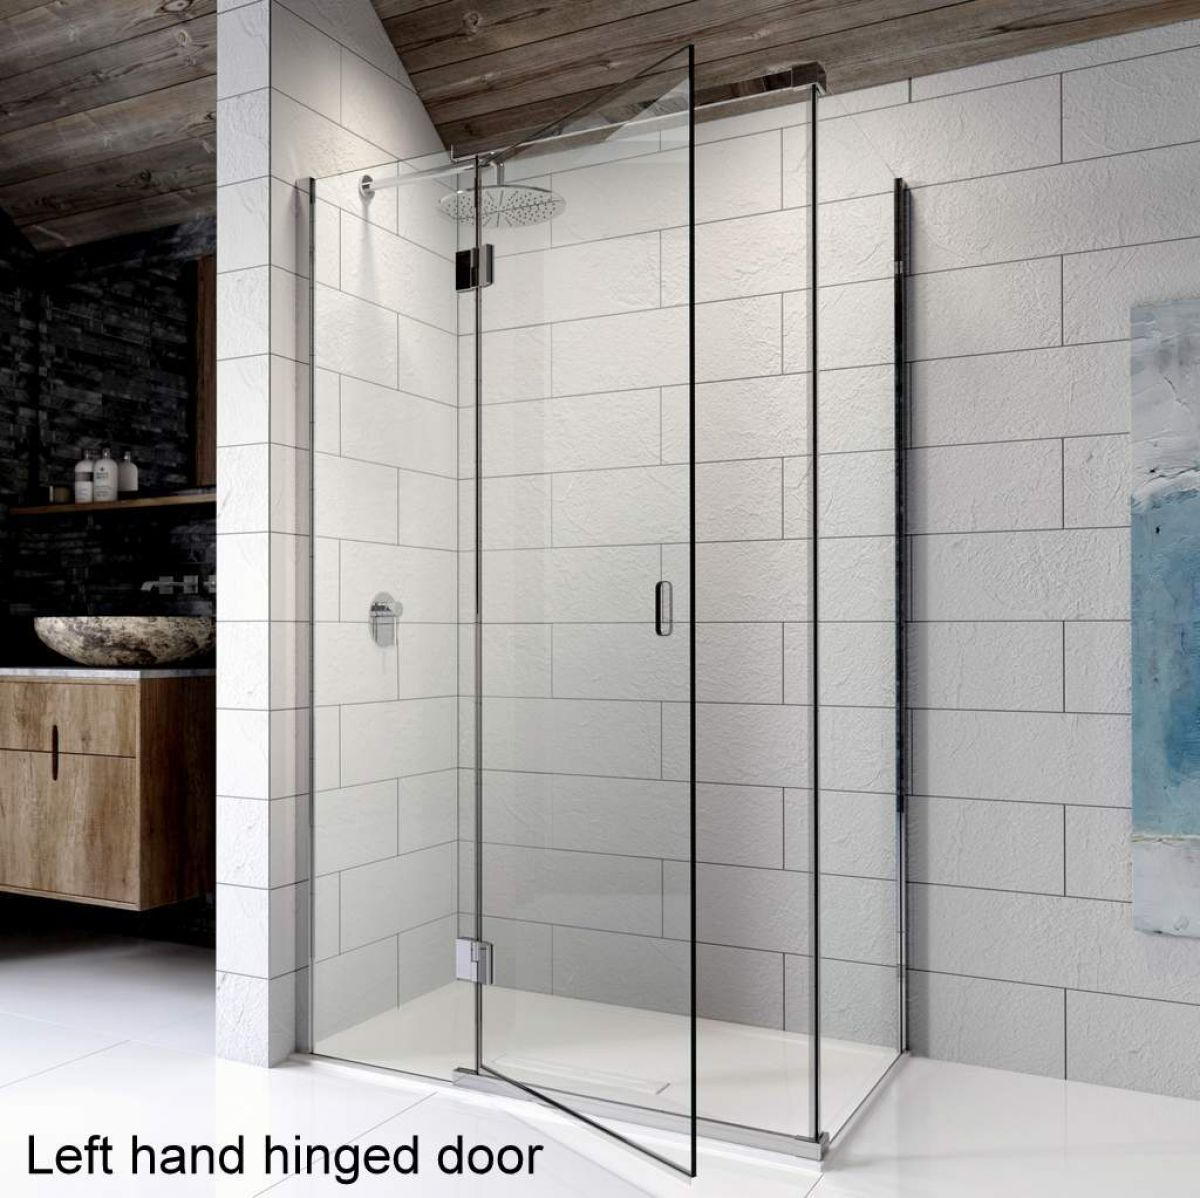 Kudos Pinnacle 8 Hinged Shower Door For Corner Frameless Shower Doors Shower Enclosure Shower Doors